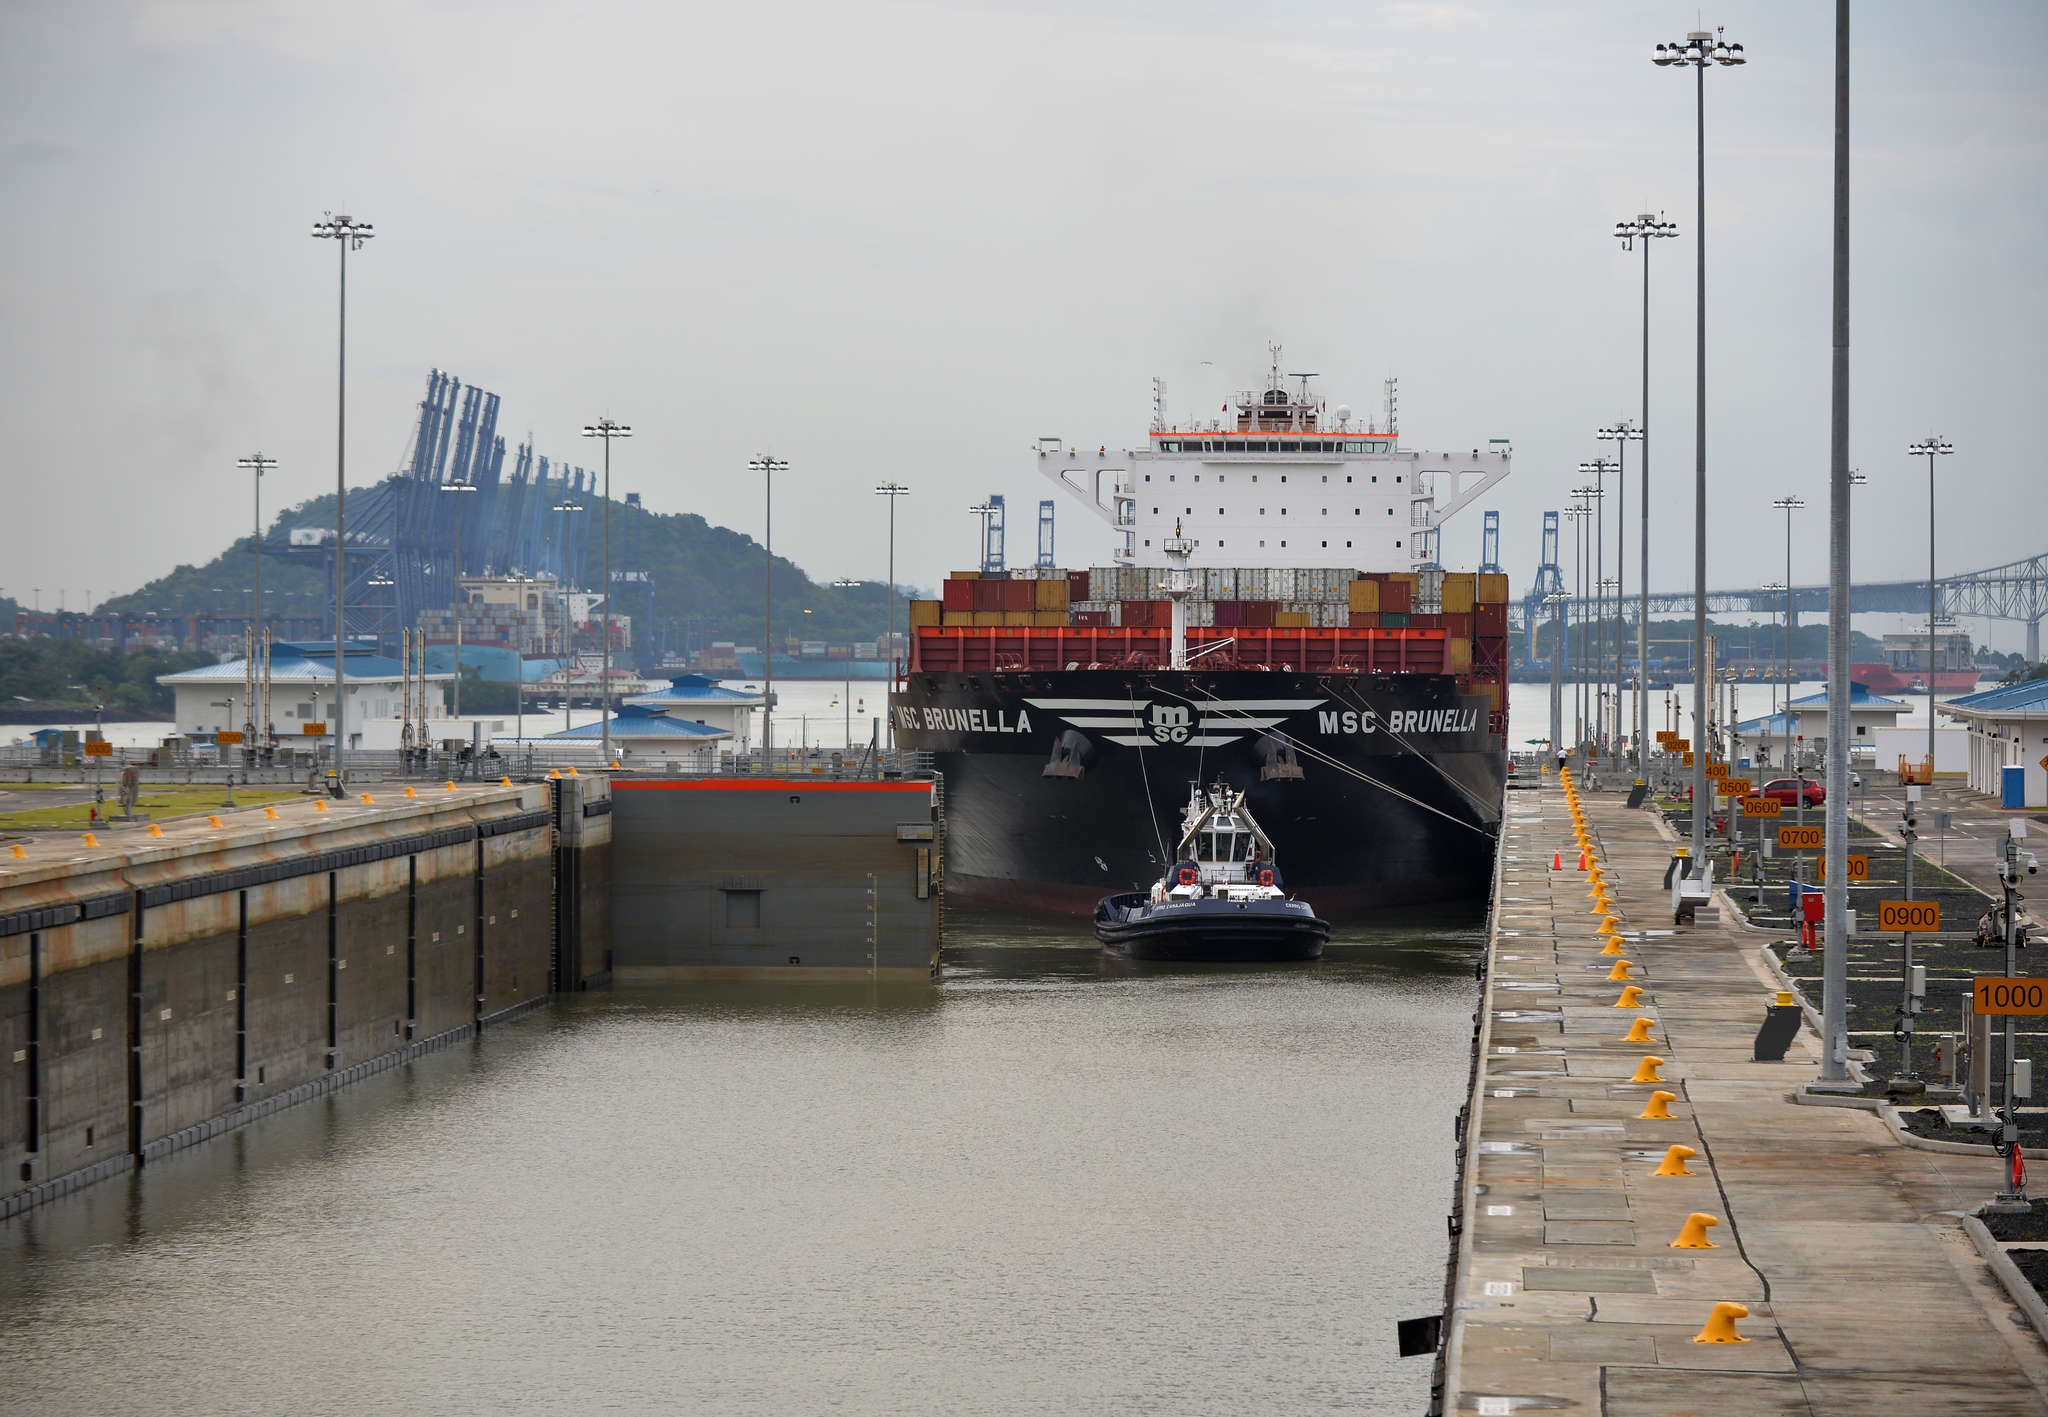 With the recently expanded Panama Canal, the Port of Philadelphia is getting the largest cargo ships to ever sail up the Delaware River.